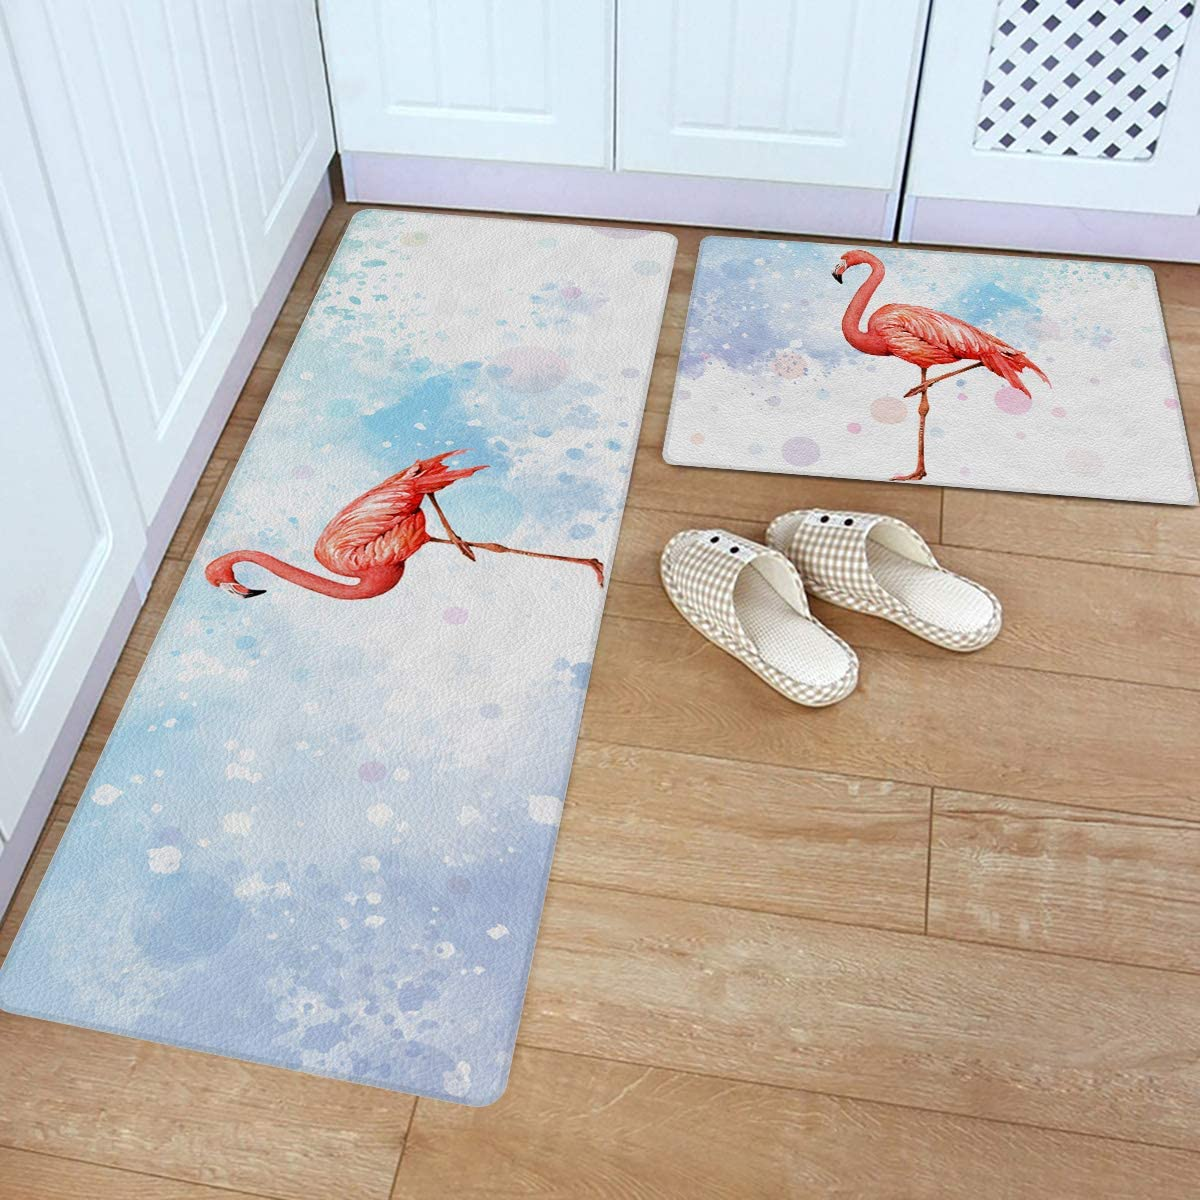 Anti Fatigue Kitchen Mat Set of Cushioned 2 Spasm price Arlington Mall Thick Kitch Non Slip